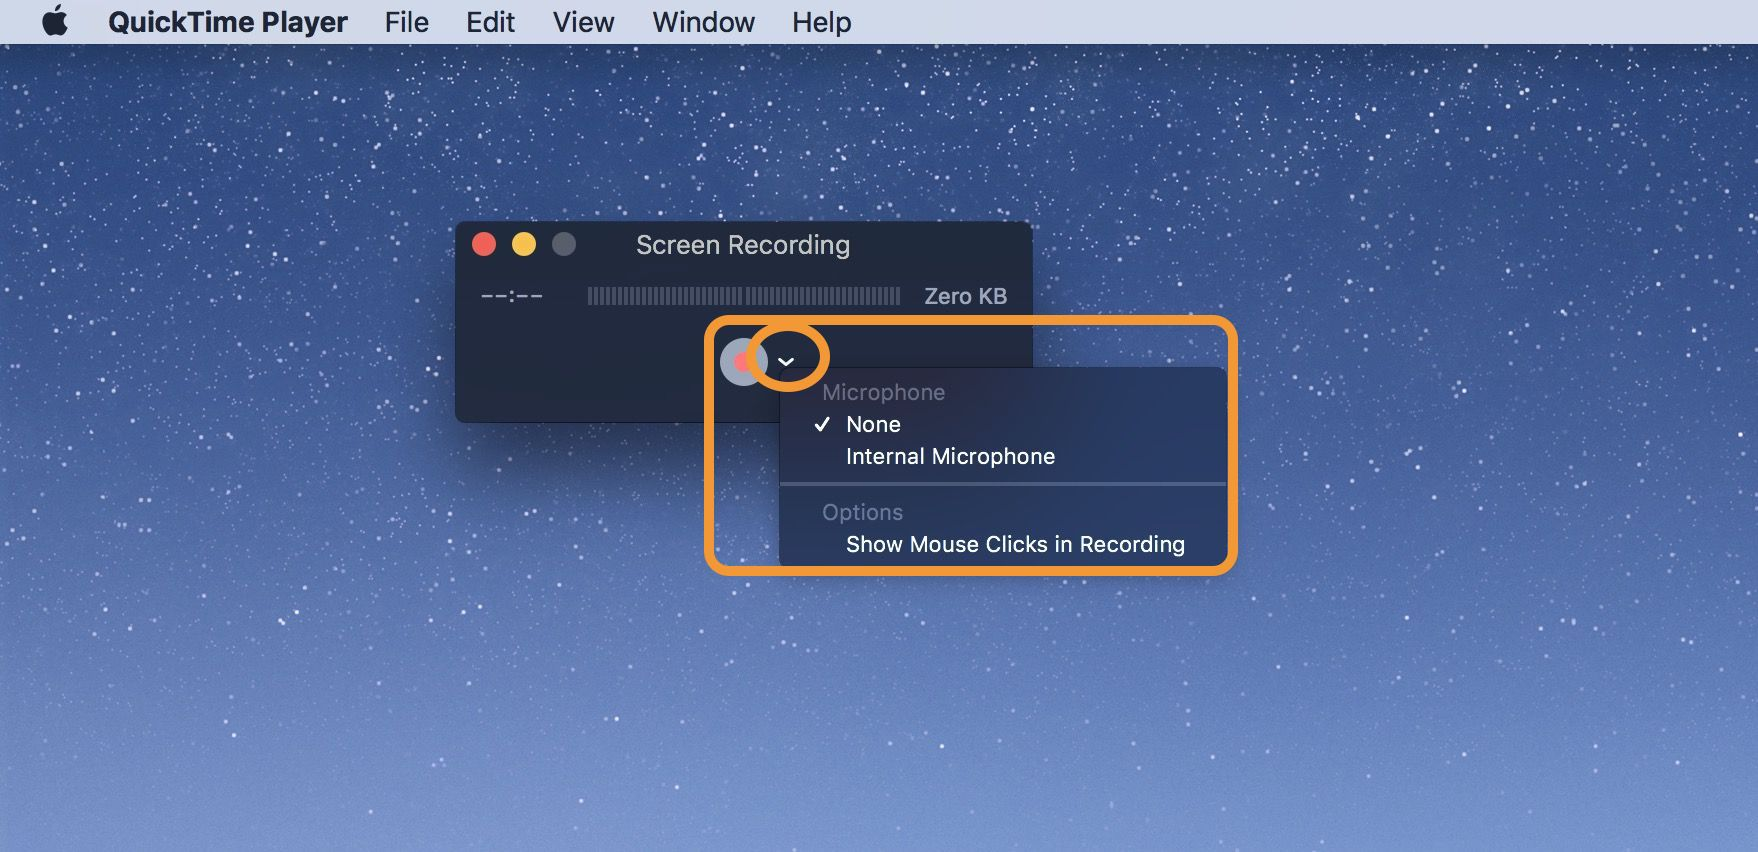 How to create a screen recording on Mac - 9to5Mac